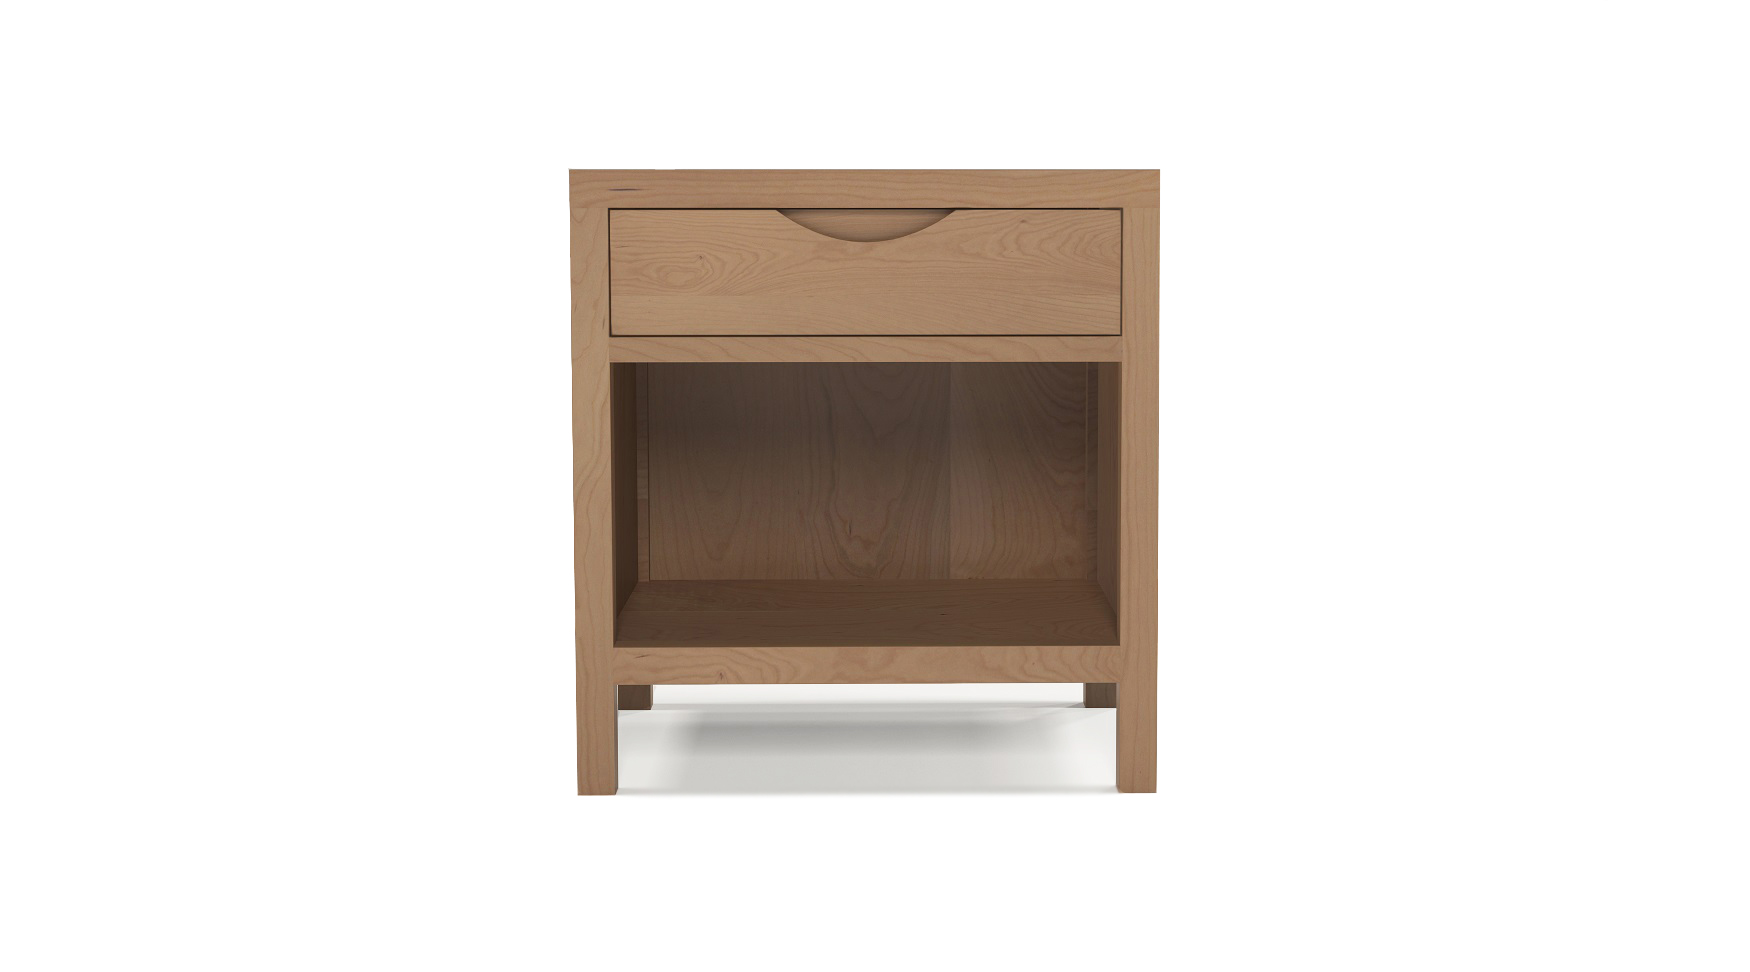 Cherry wood luxury furniture small bedside table with integrated wood handles